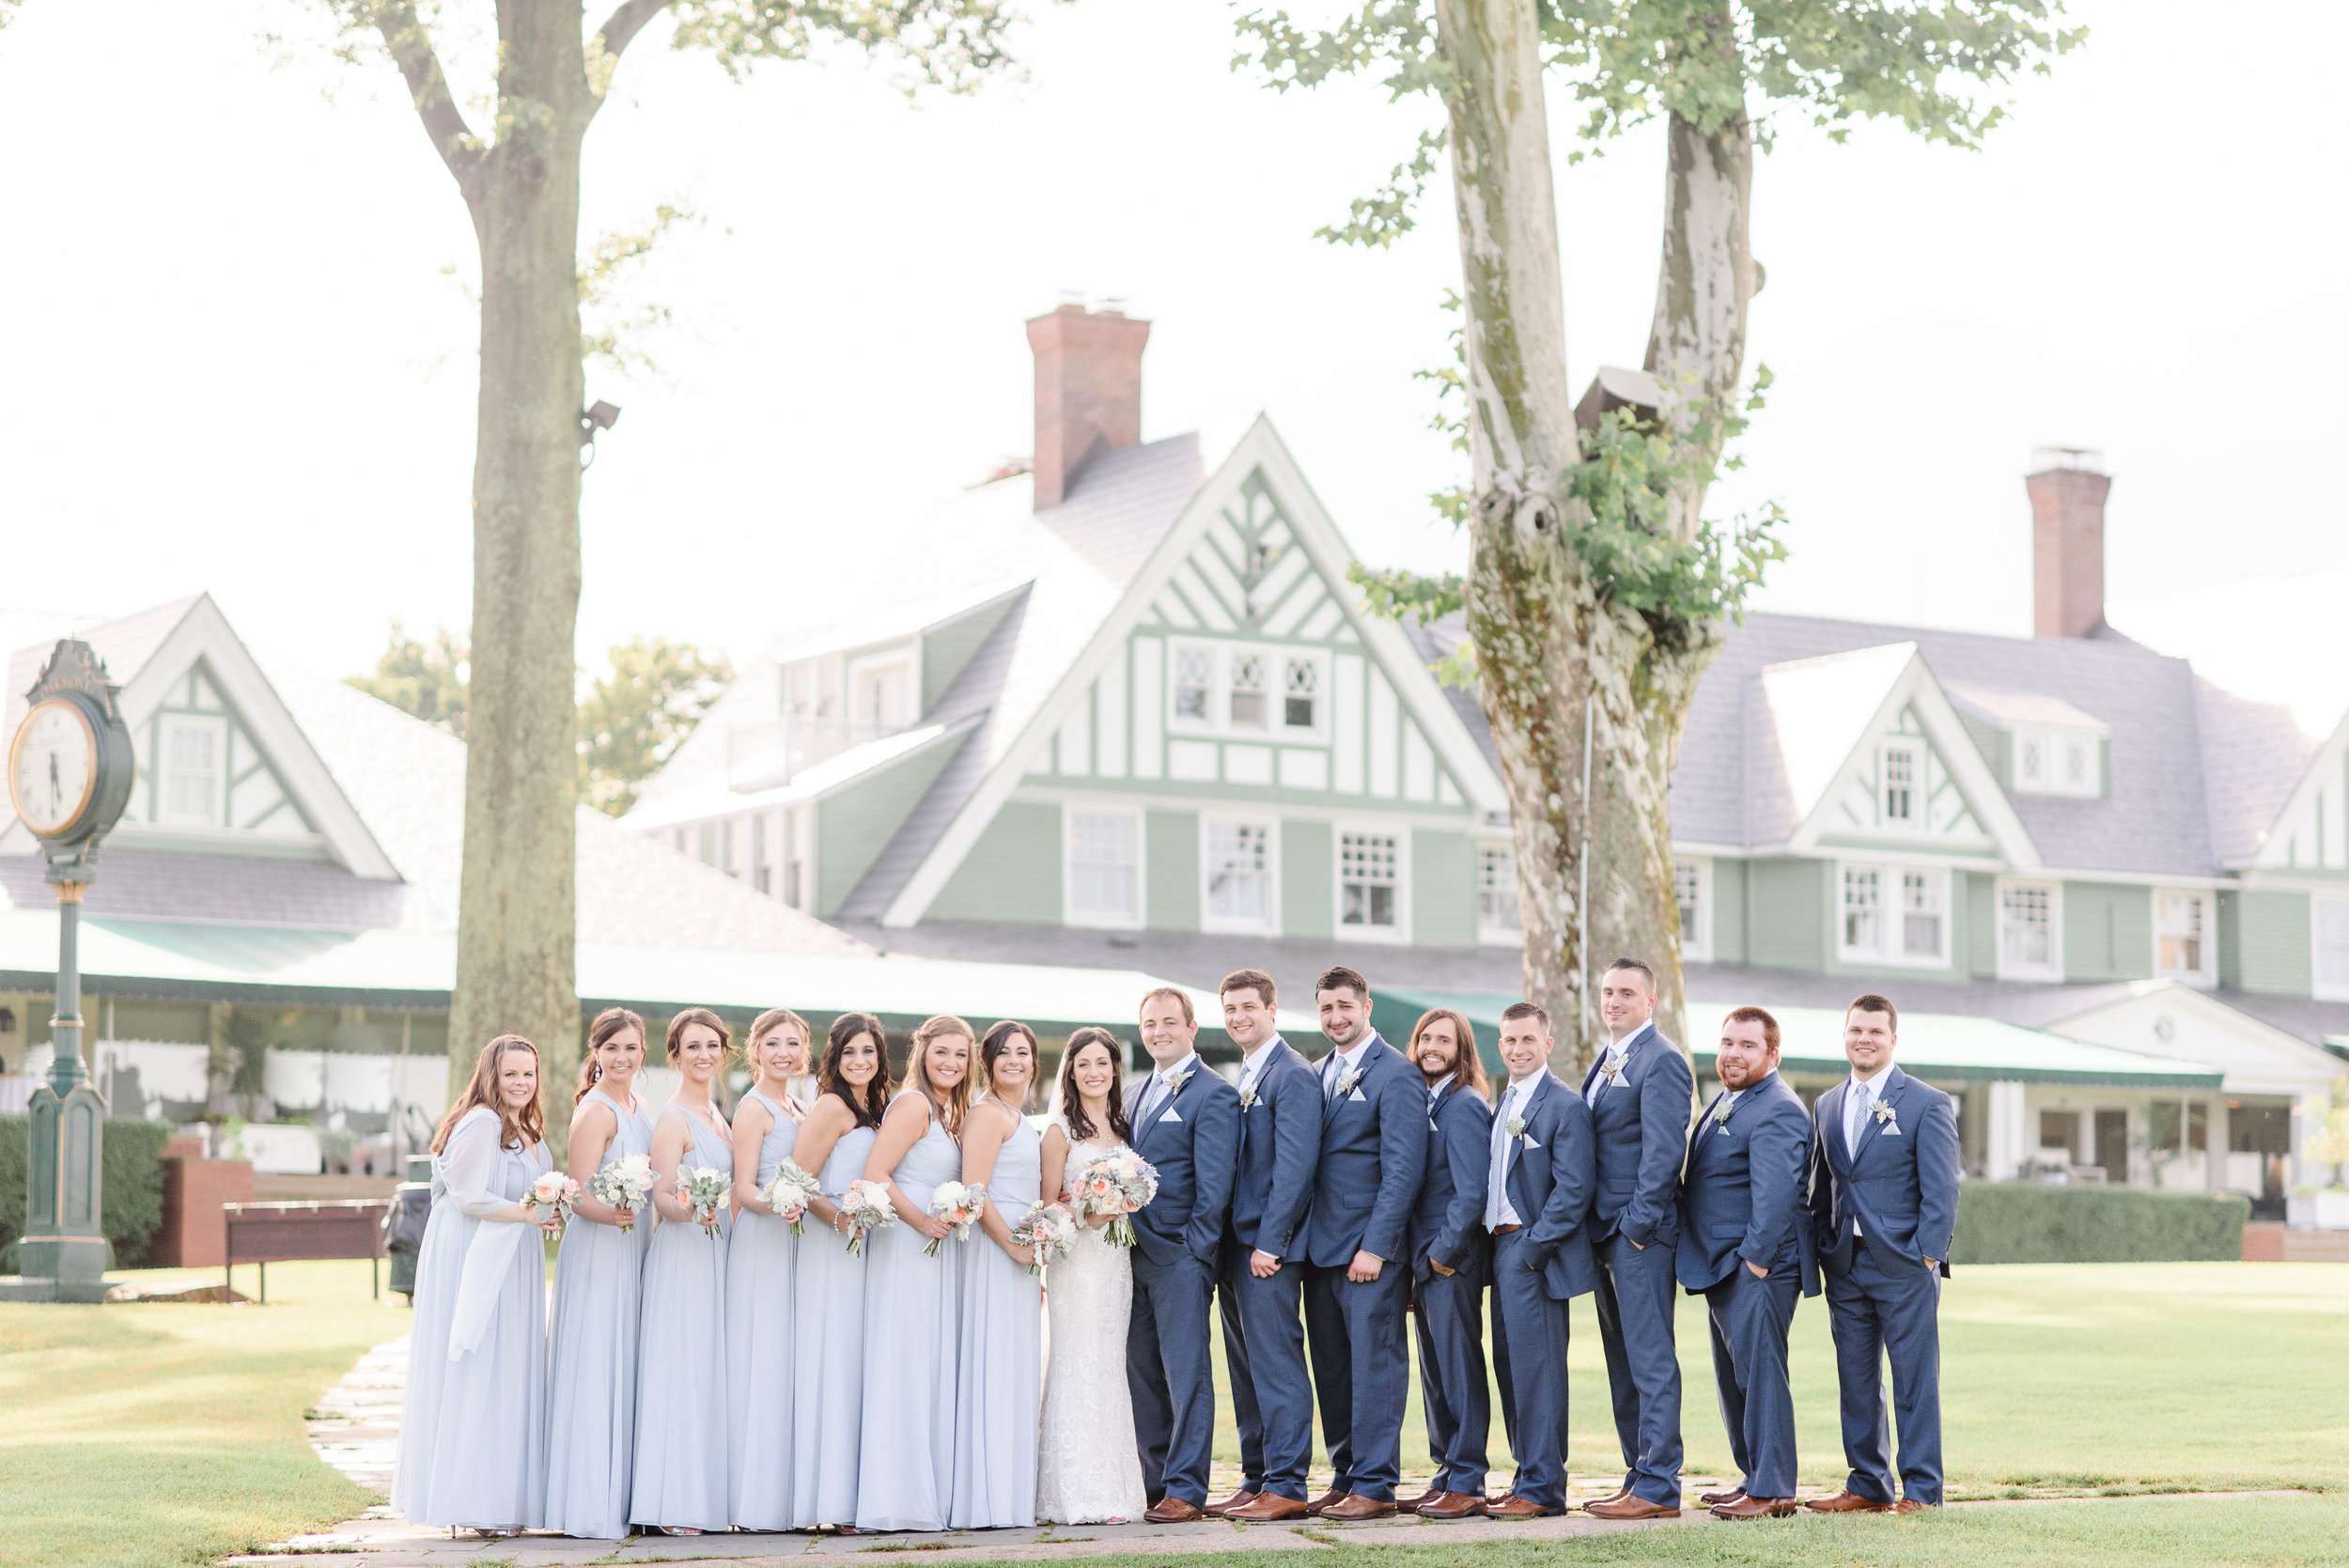 Bridal party dressed in blue for elegant Greek wedding held in Pittsburgh at Oakmont Country Club. See more details at exhale-events.com!